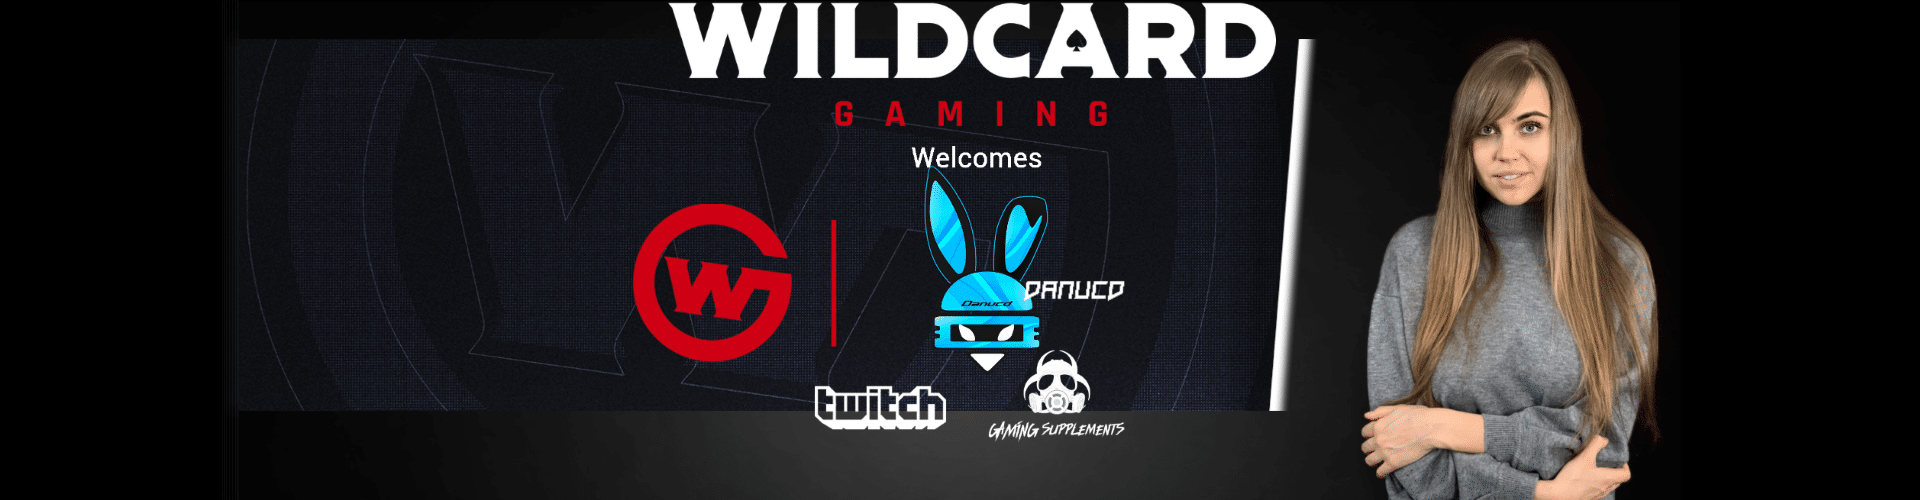 Wildcard Gaming Welcomes Danucd!!!